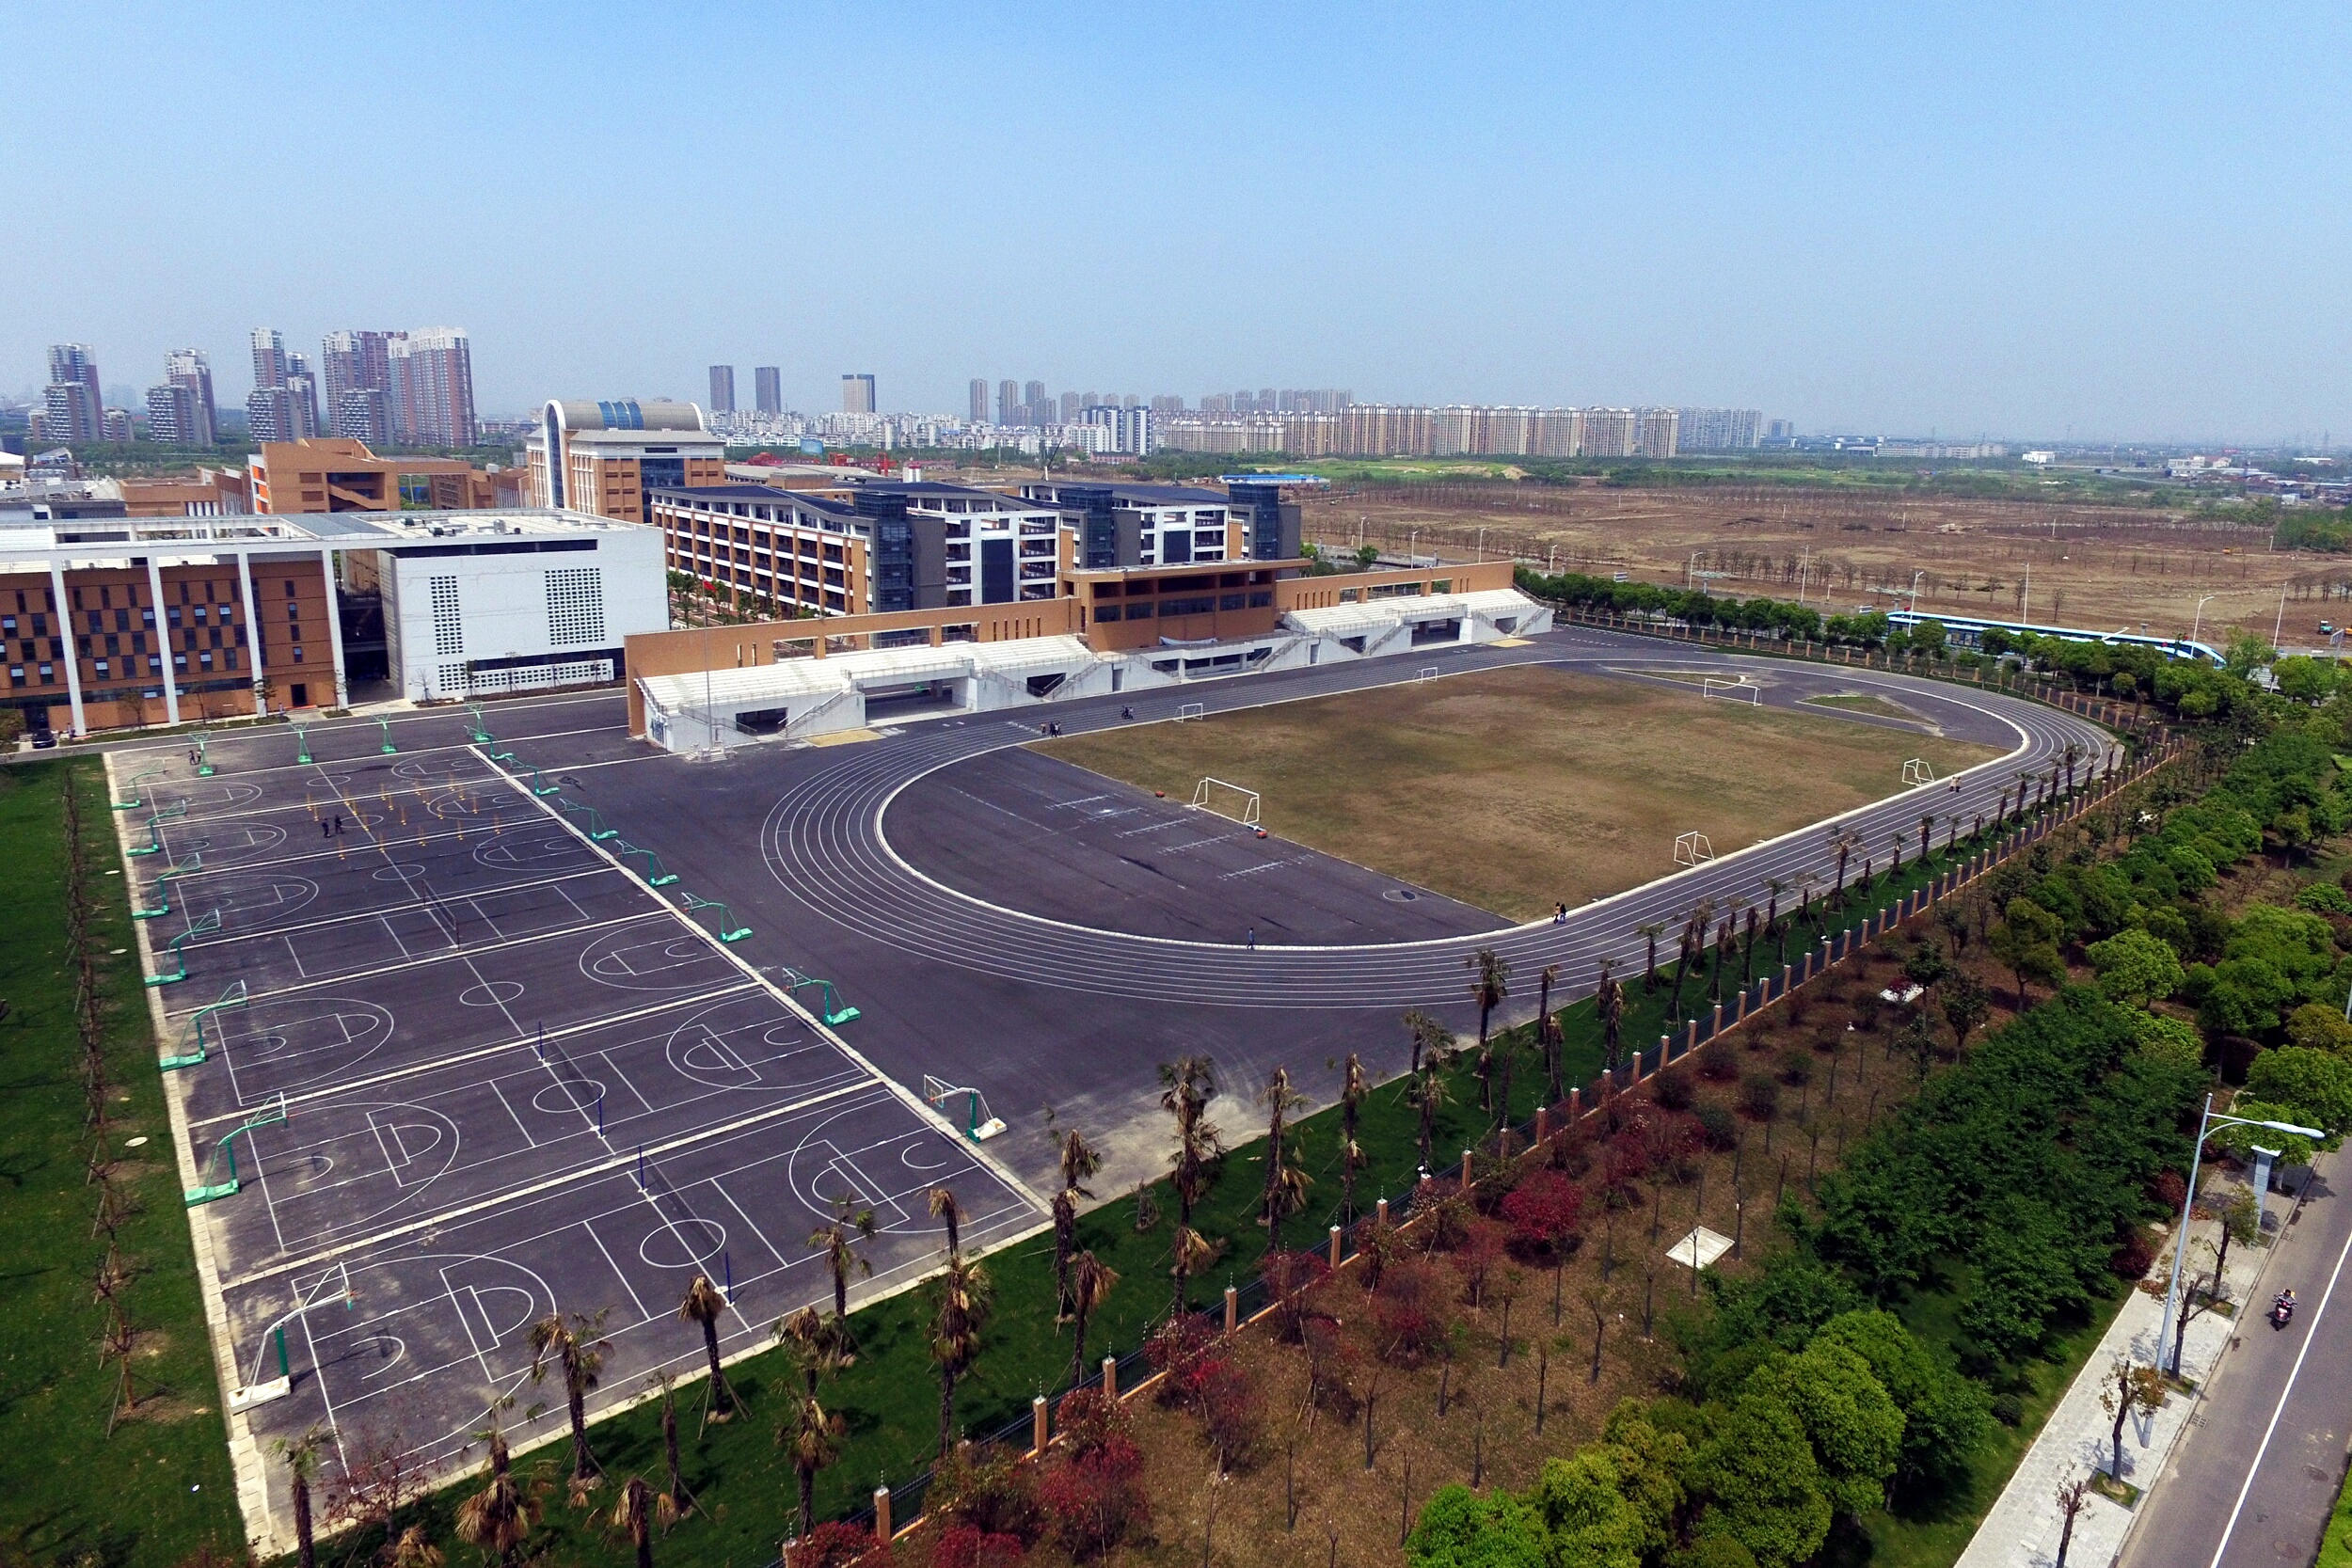 A view of the new campus of Changzhou Foreign Languages School near a toxic site in Changzhou city, China's Jiangsu province, on April 18, 2016